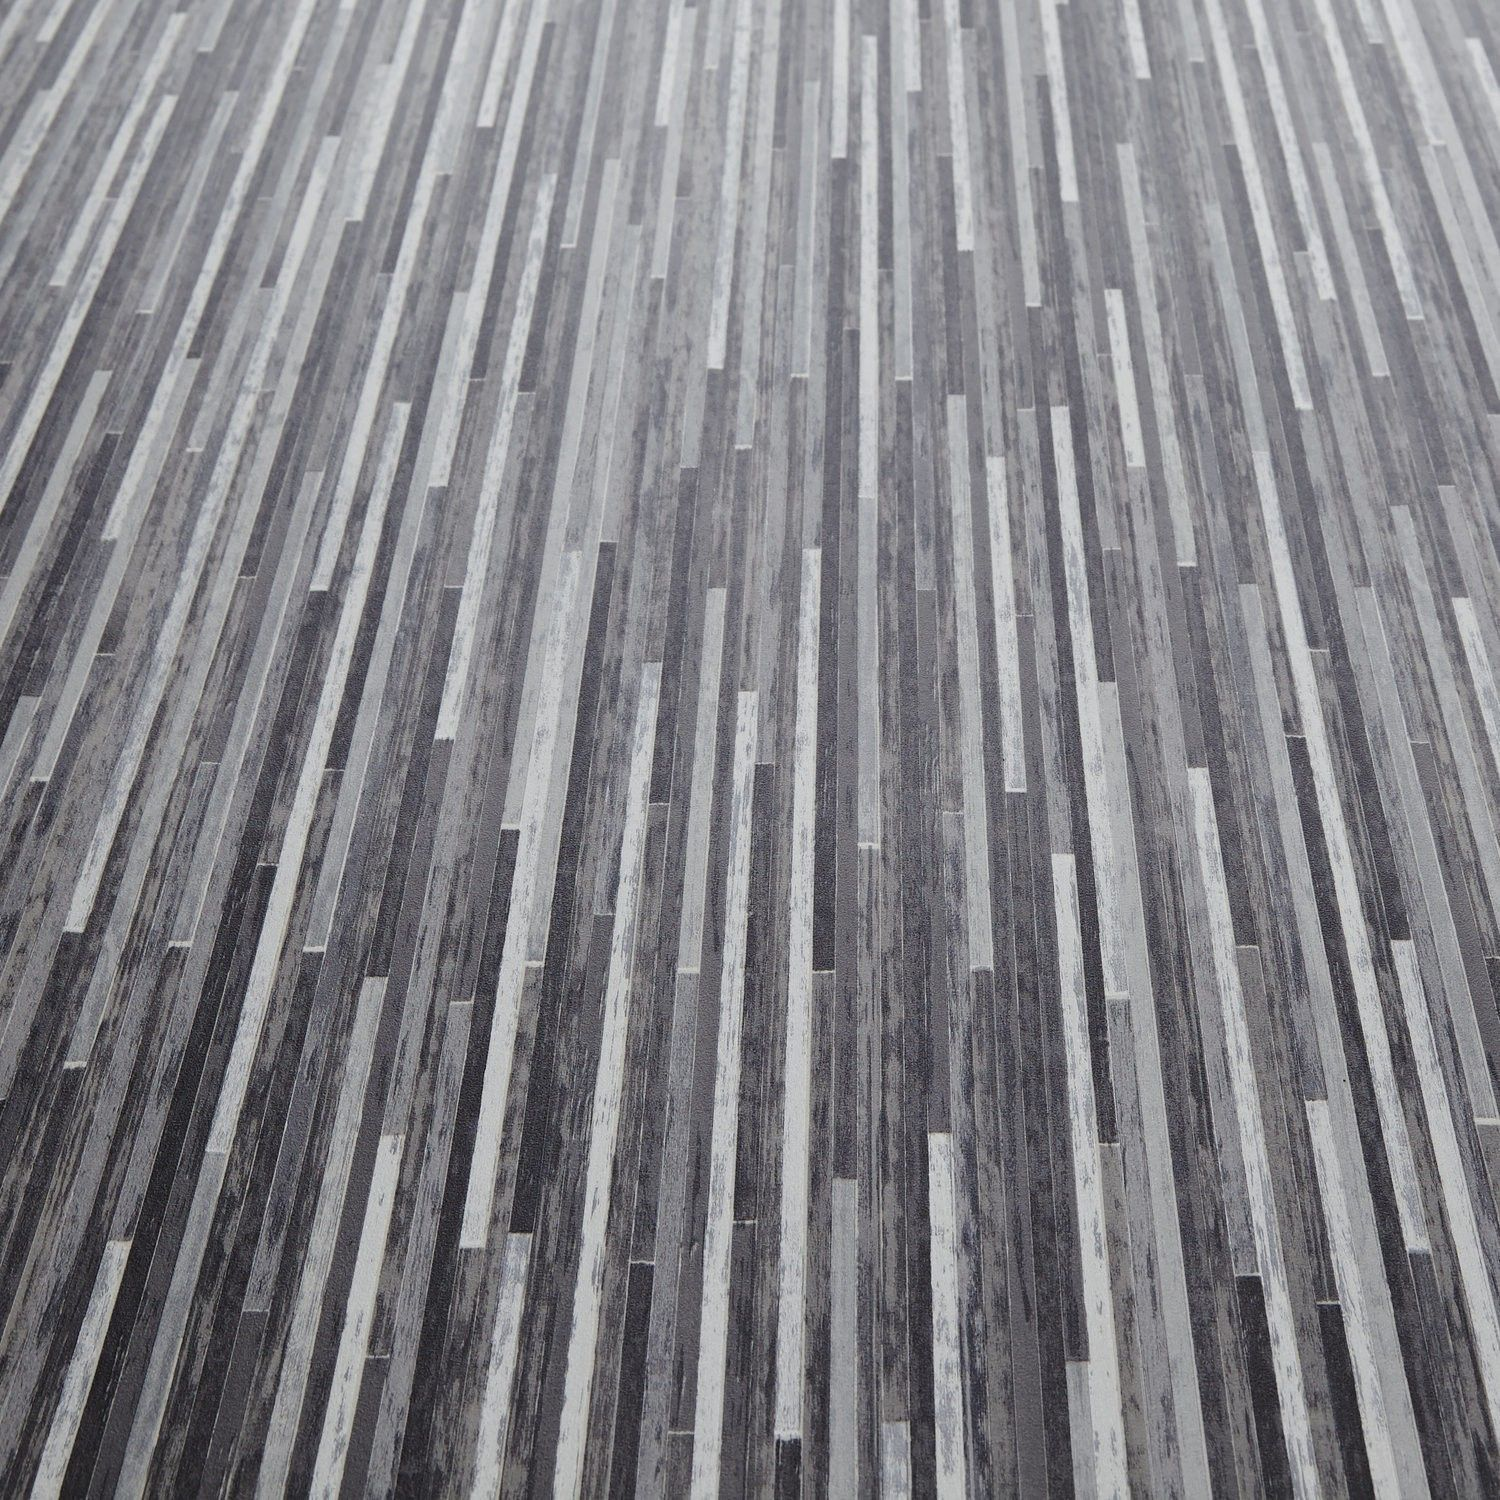 contemporary lino flooring - uncover more image and concepts. Find ... - ^